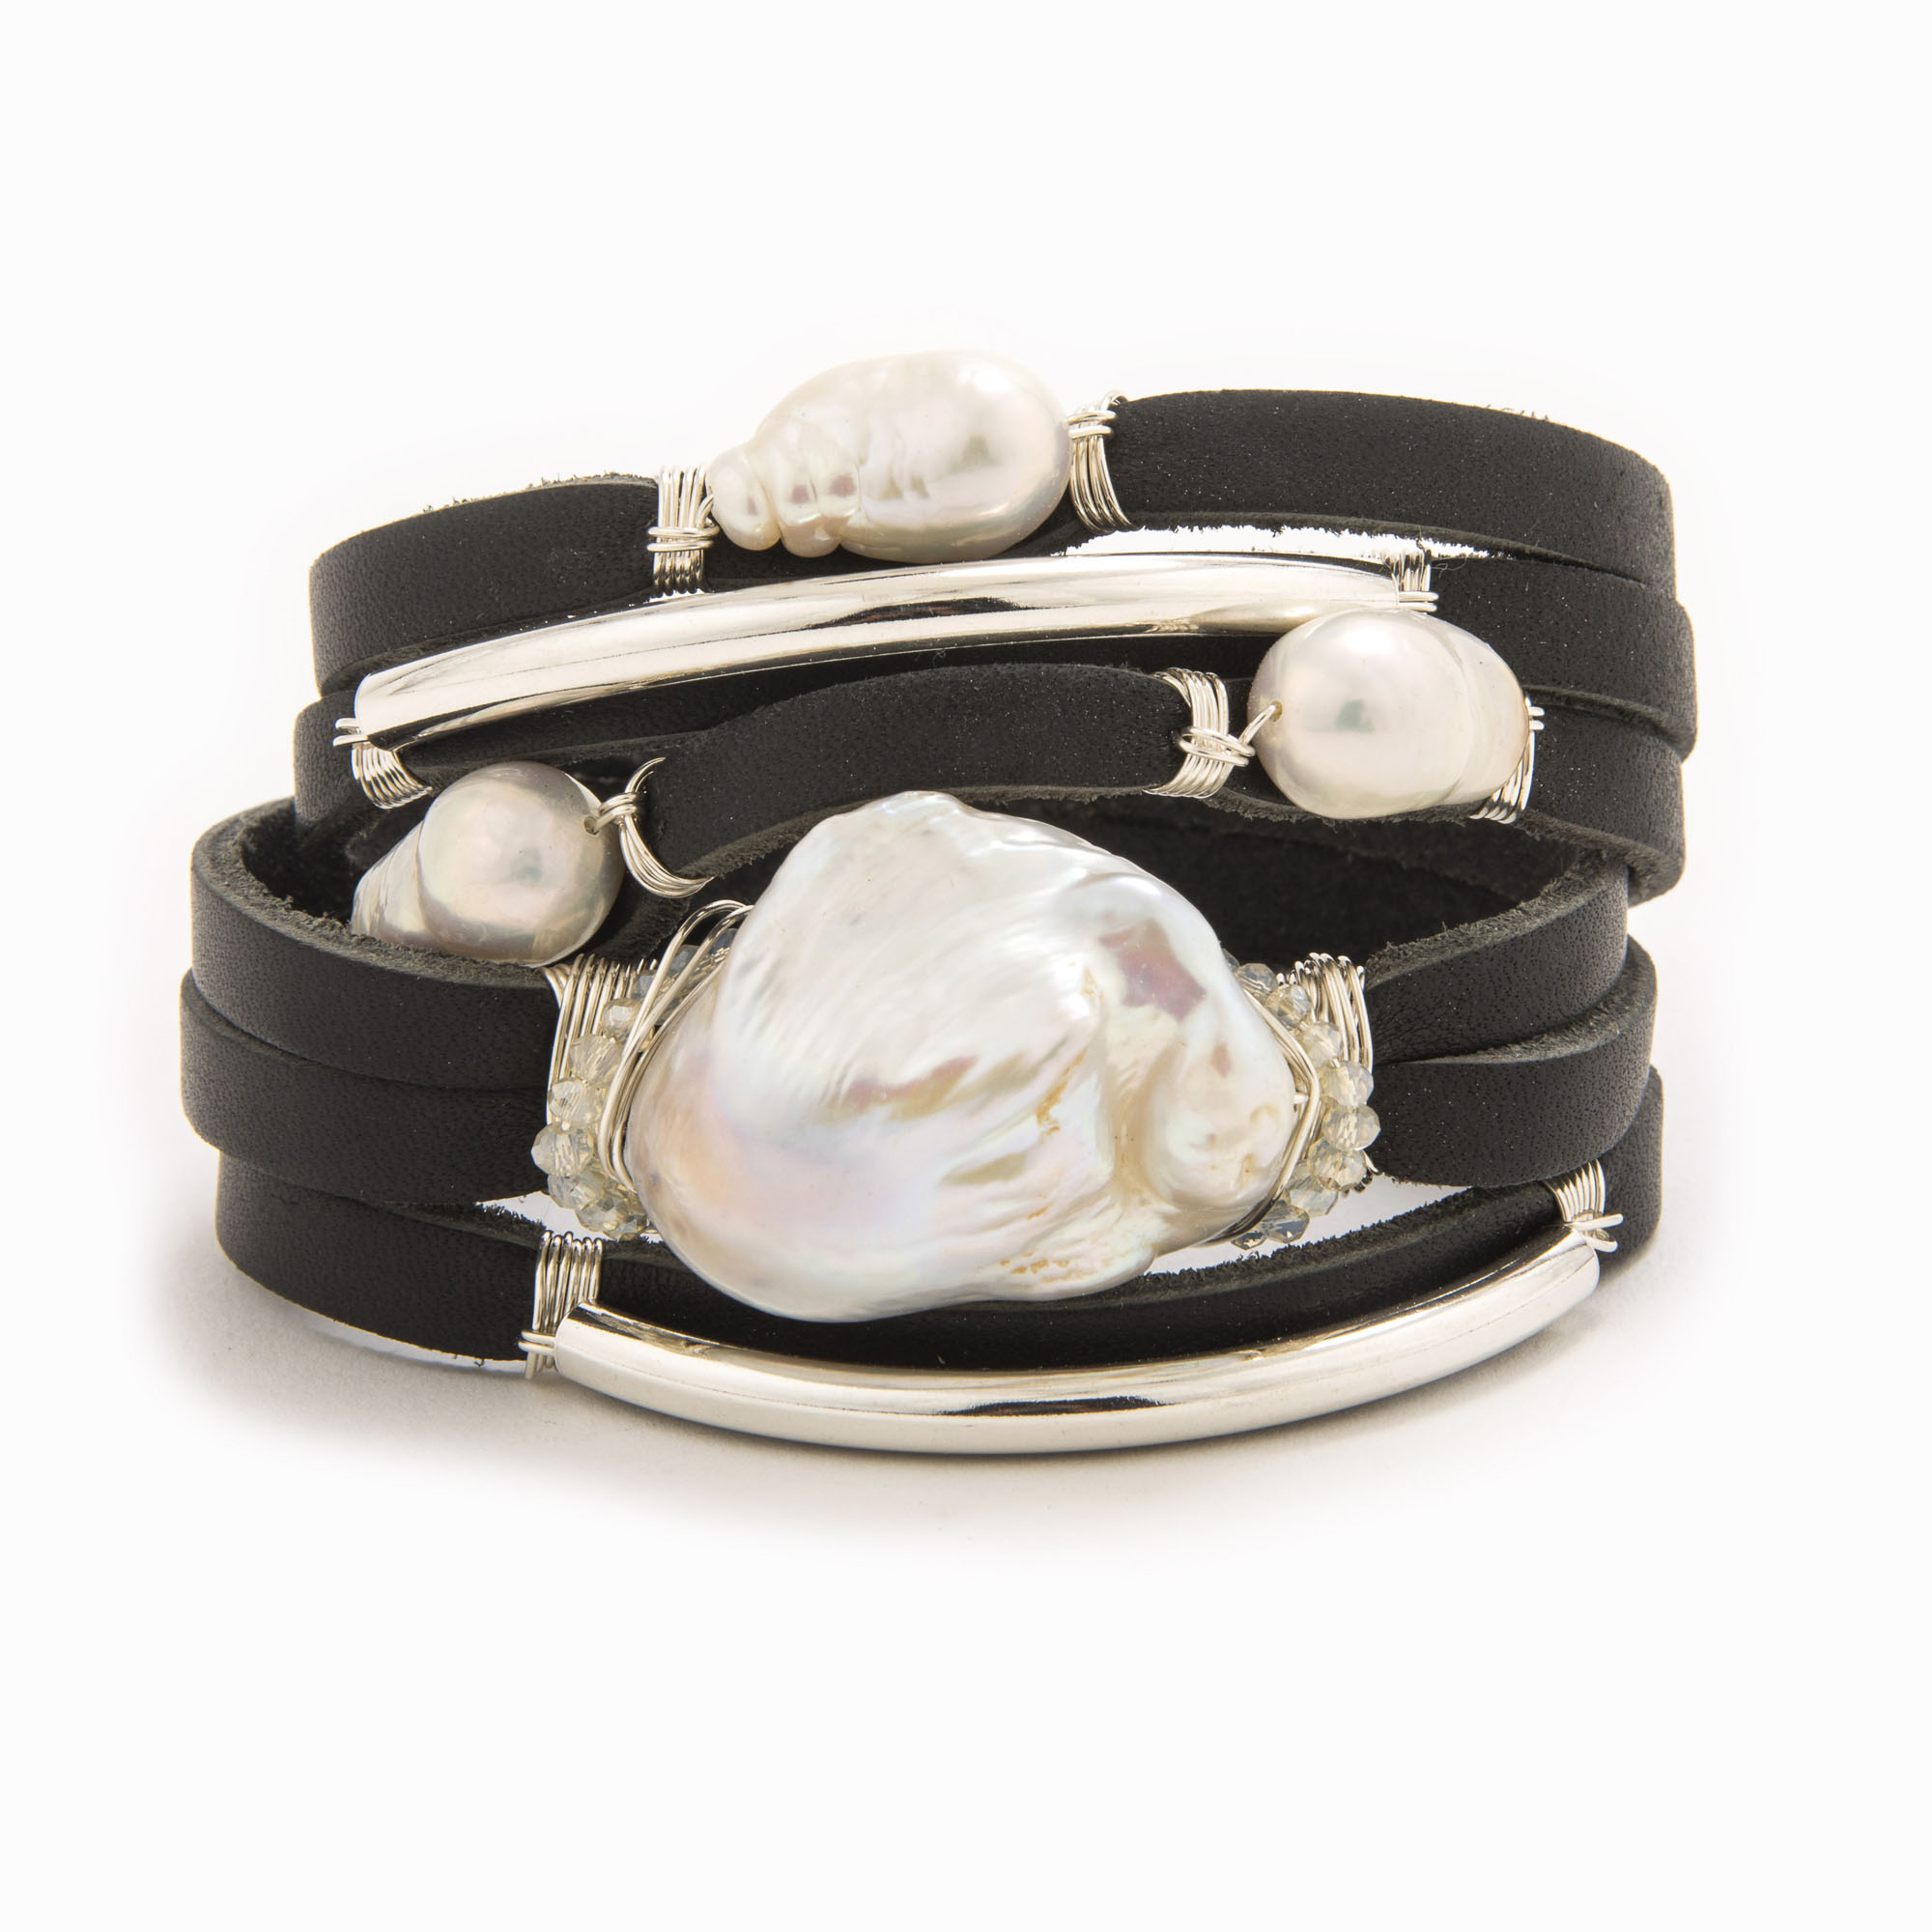 A black-colored leather wrap bracelet with wire wrapped in sterling silver tubes with baroqoe and fresh water pearls.